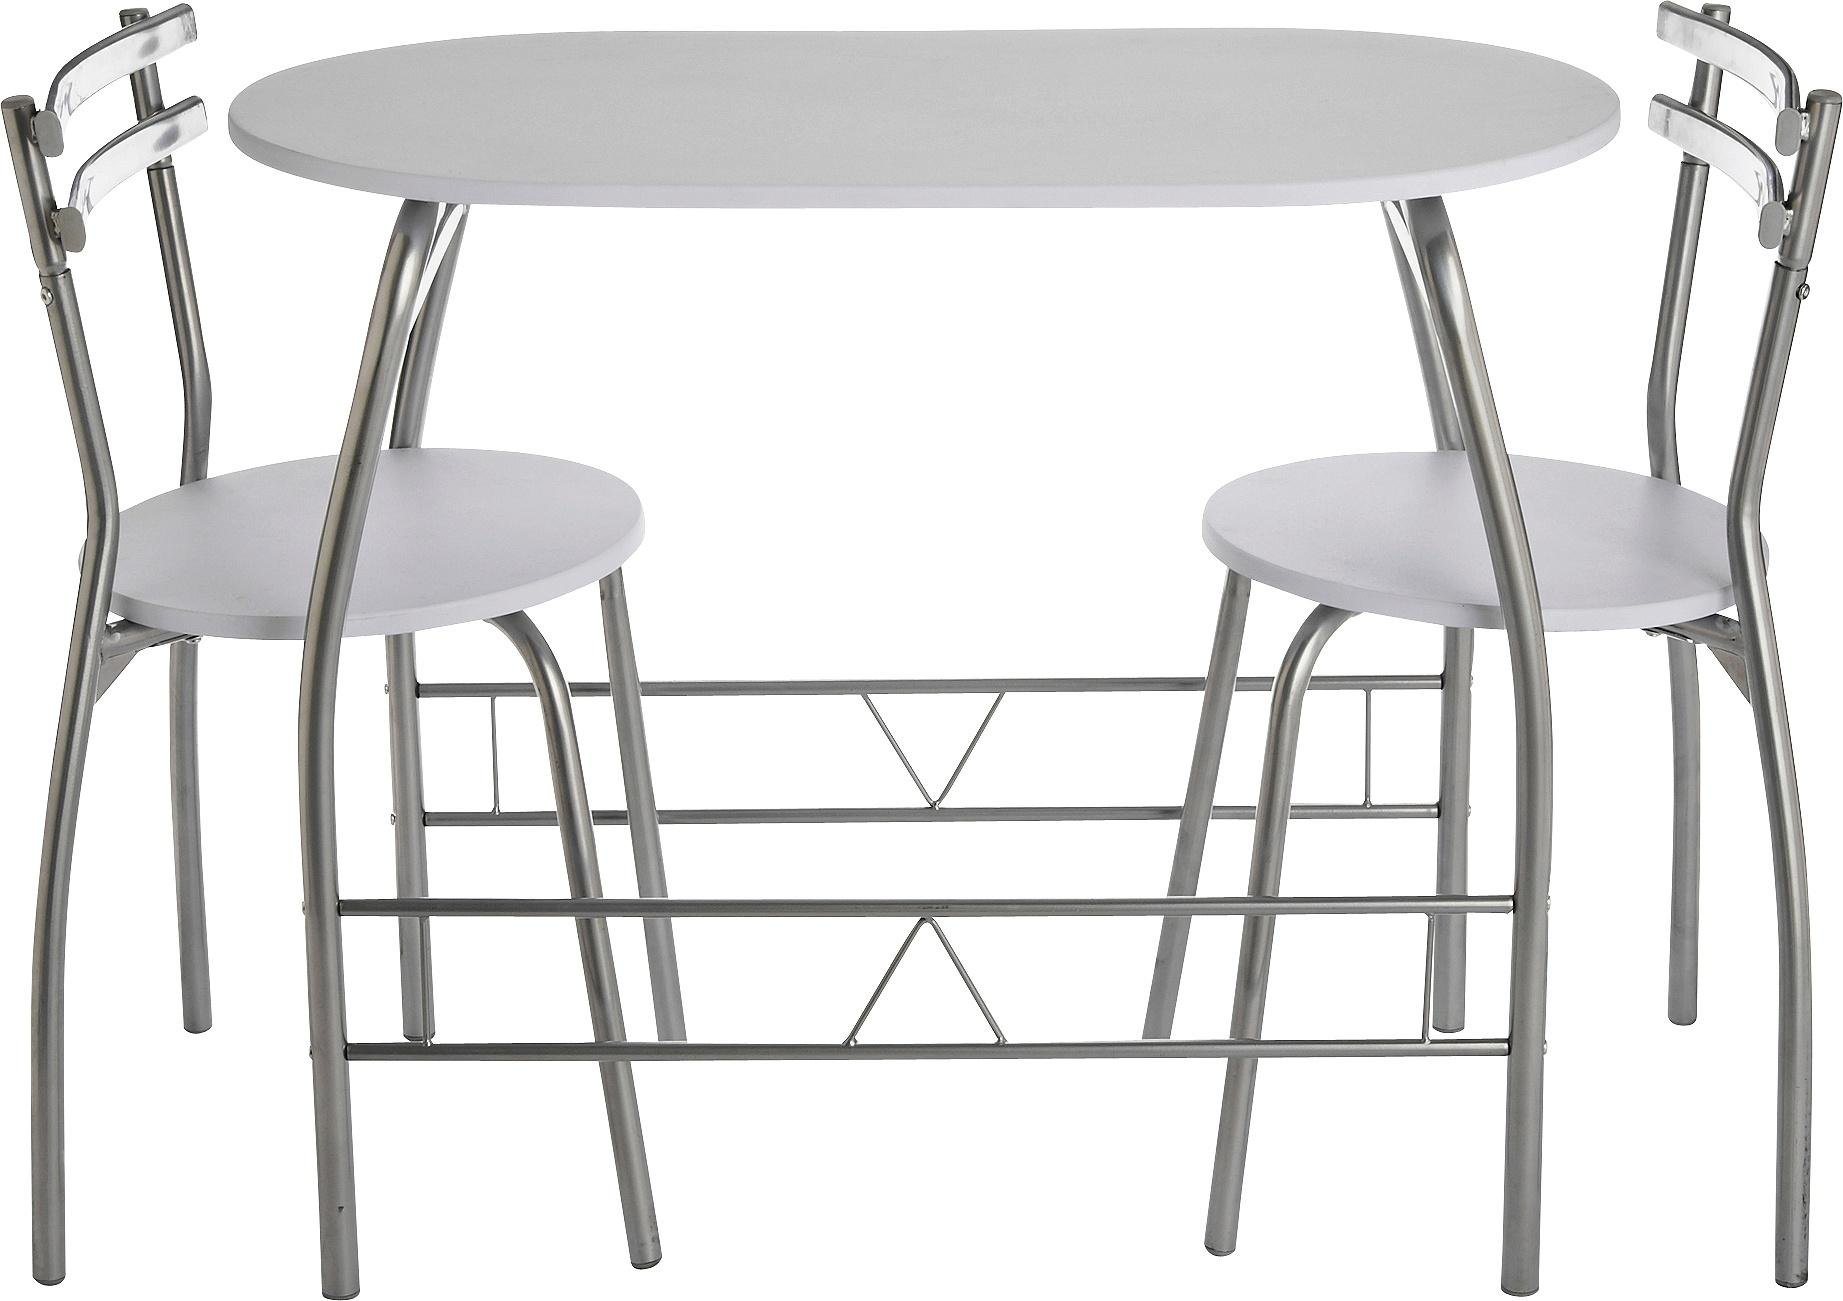 Buy HOME Vegas Dining Table   Chairs - White at Argos.uk